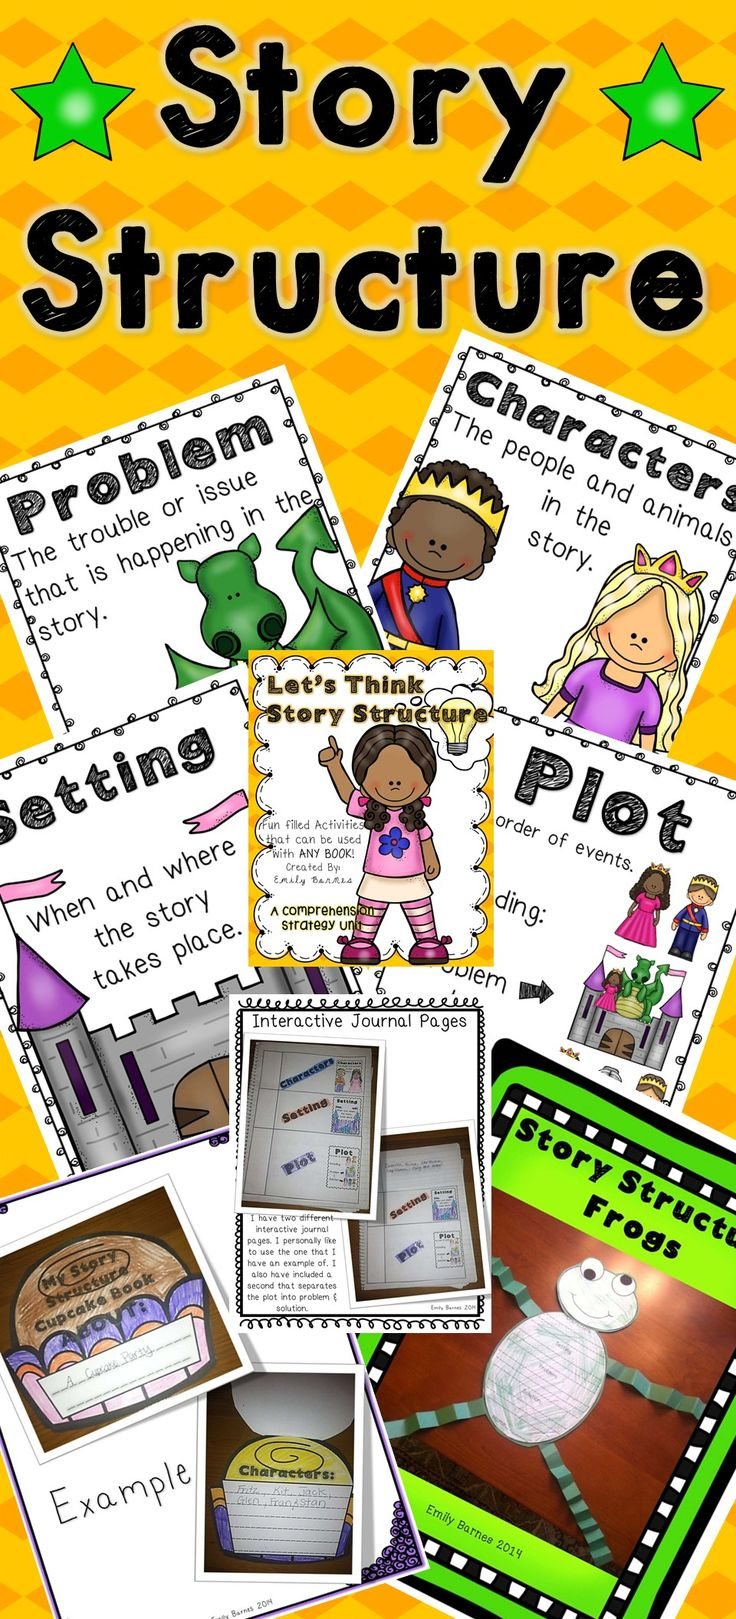 Story Structure! Activities for teaching your students all about the comprehension strategy Story Structure! Crafts, printables, interactive journal pages, anchor posters, THE WORKS! Use with any book!!!